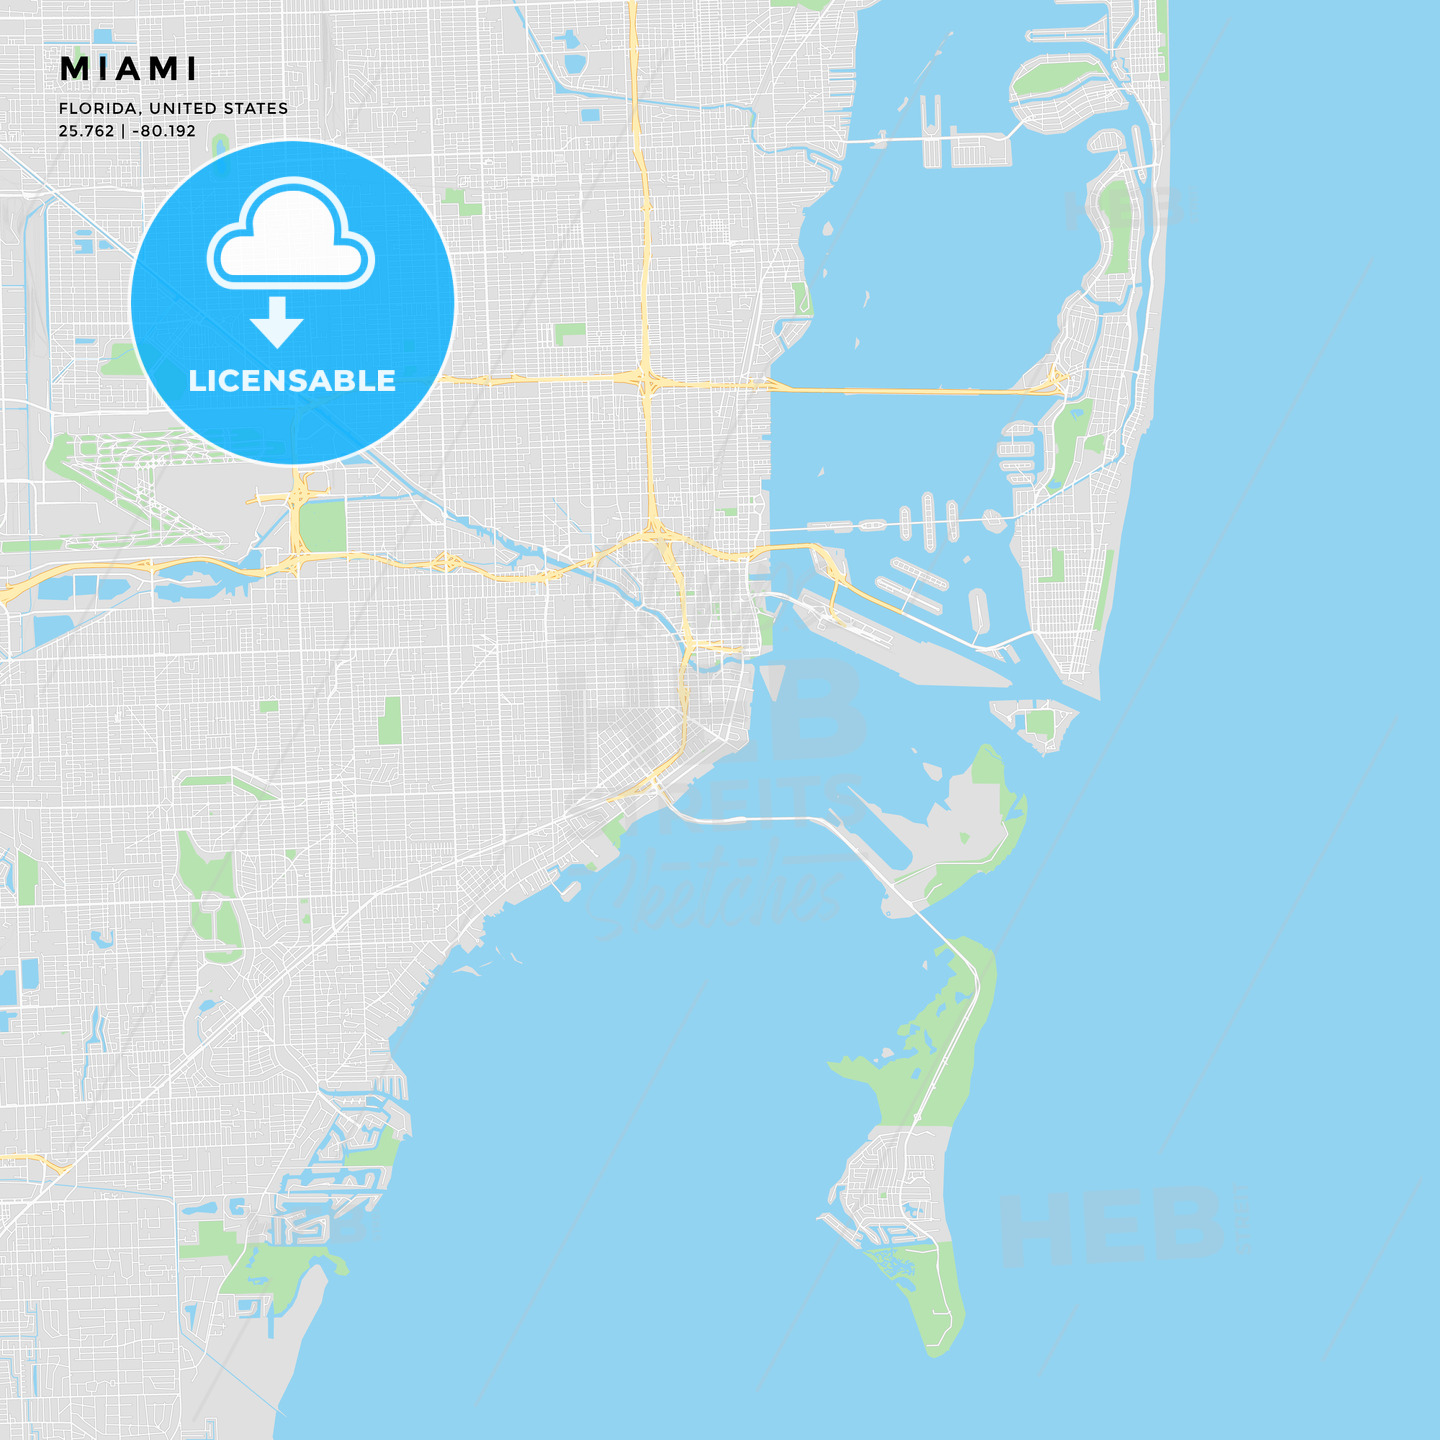 image about Printable Florida Map titled Printable highway map of Miami, Florida